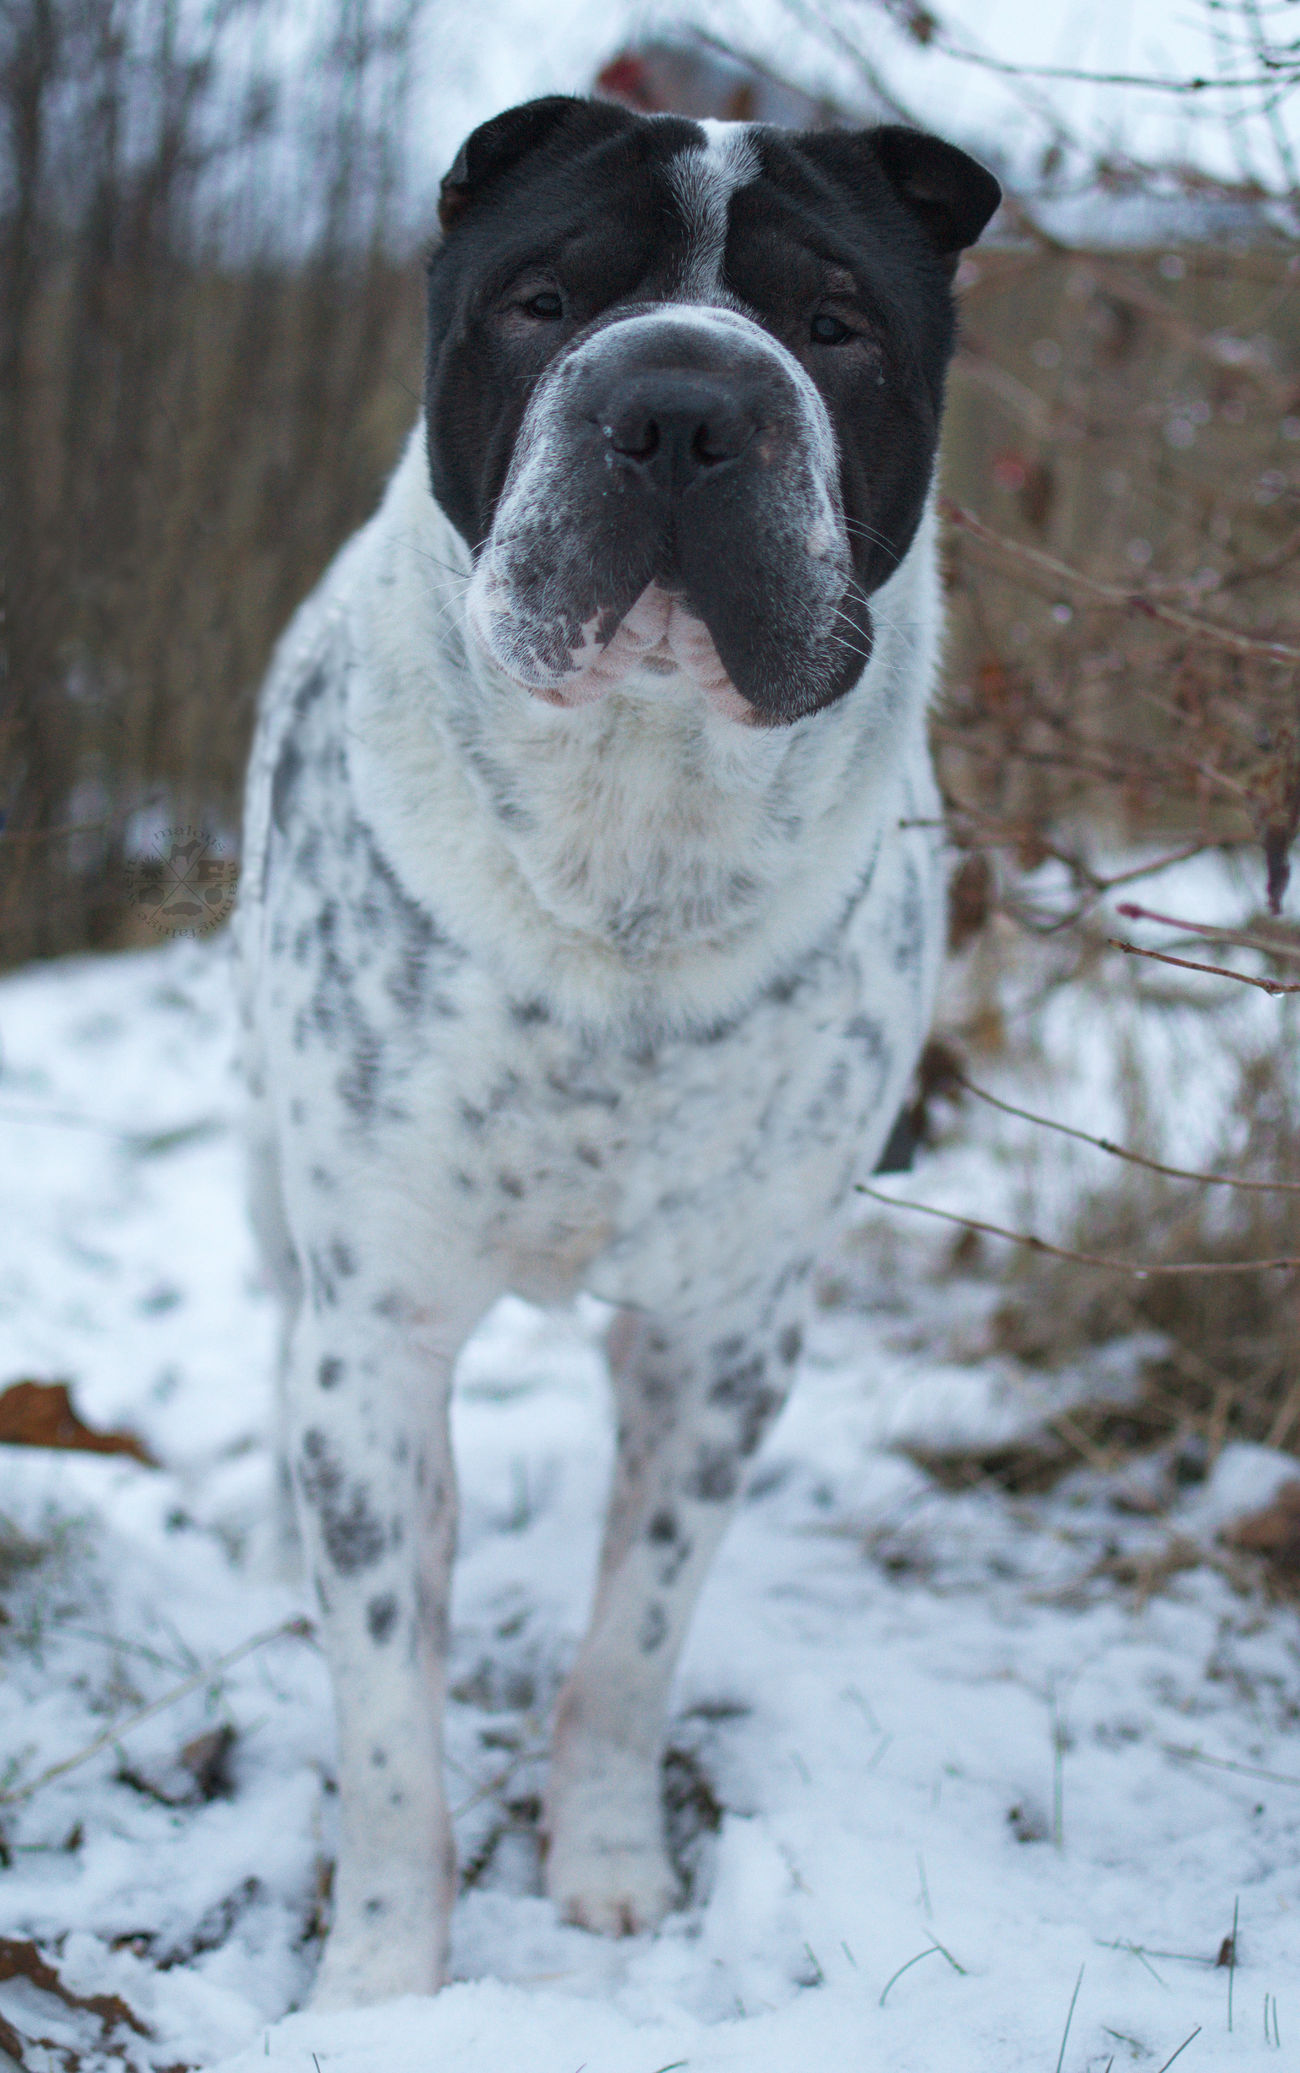 One Animal Animal Themes Domestic Animals Pets Dog Looking At Camera No People Nature Outdoors Schnee Snow Cold Temperature Hund Dog Photography Hundefotografie Braunschweig Celle Hannover, Germany Looking At Camera Nature Natur